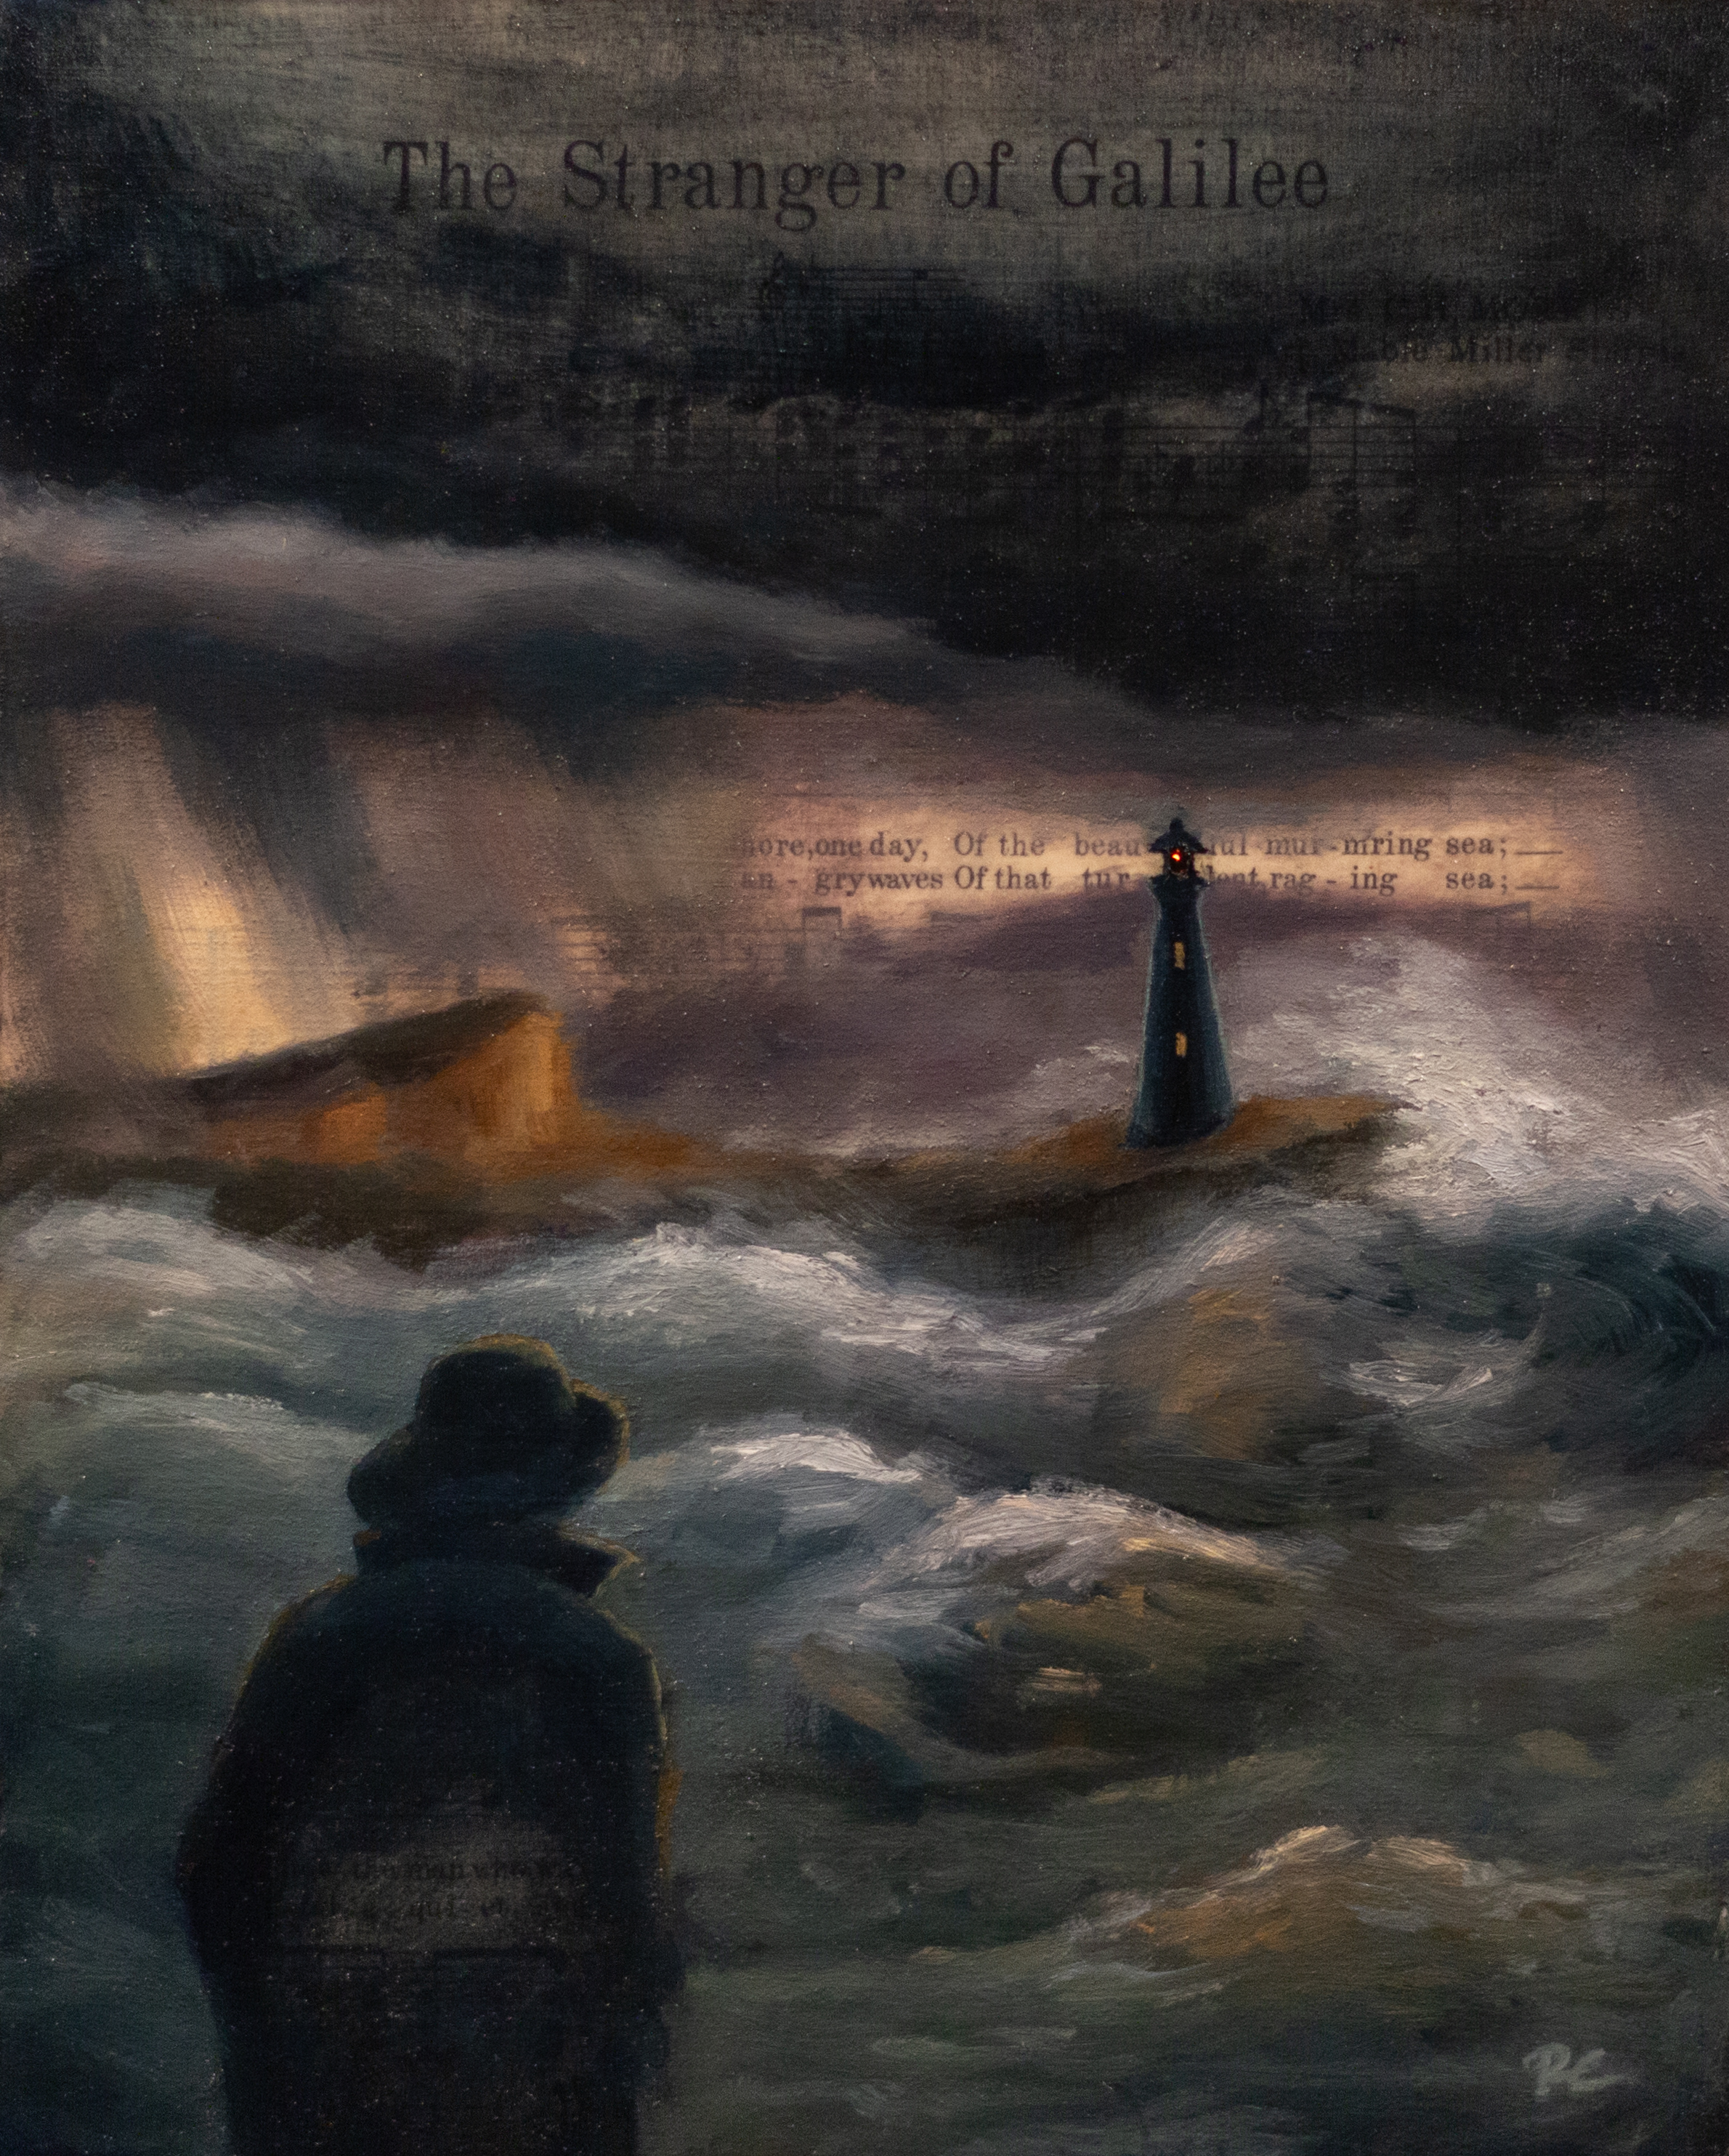 image of man looking out at a lighthouse